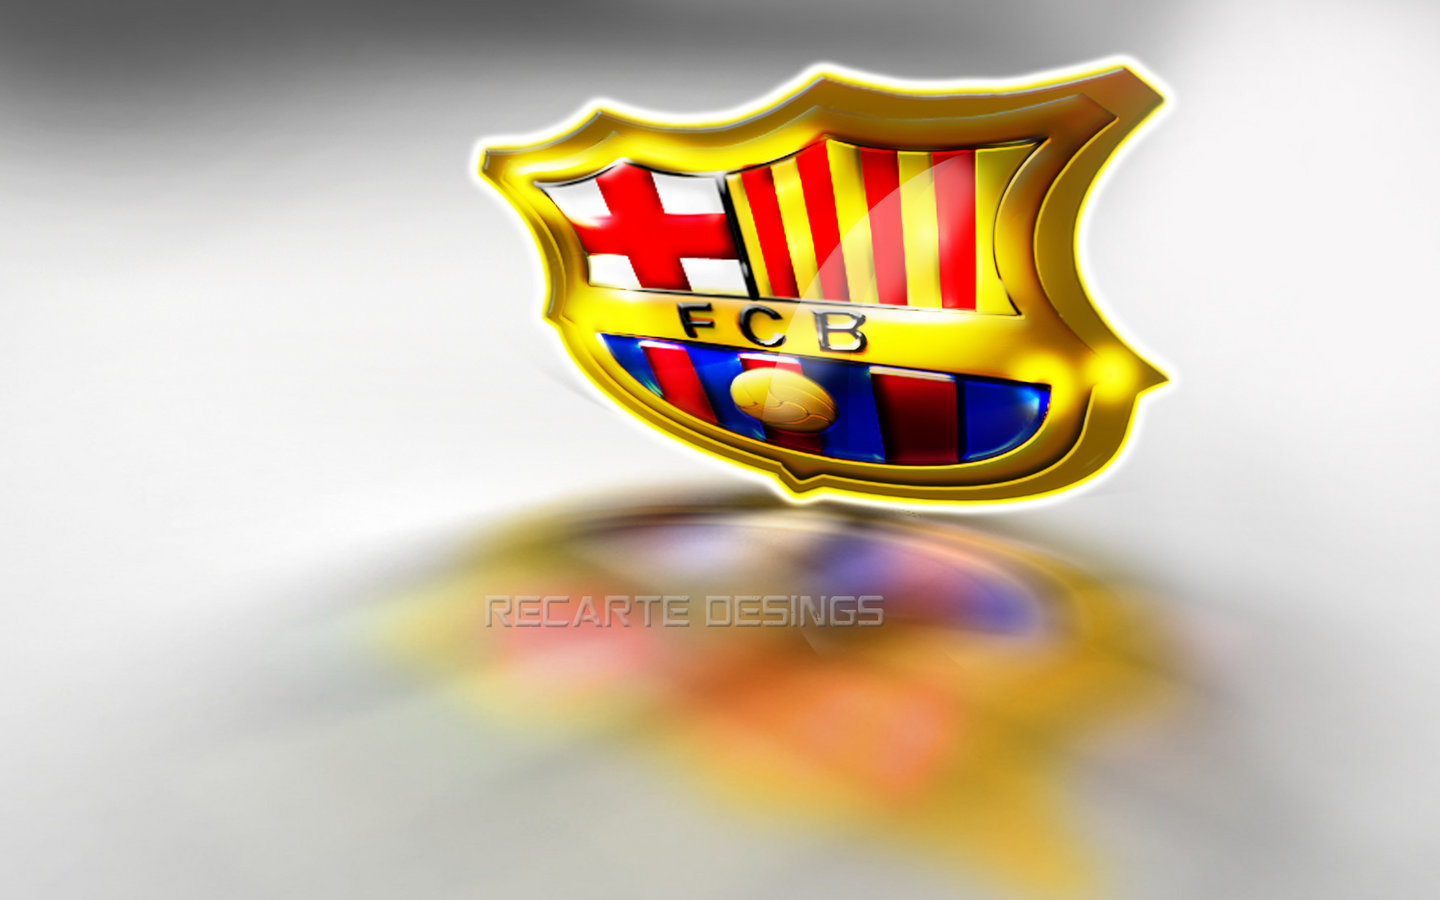 Images fc barcelona logo - the wave pictures kiss me